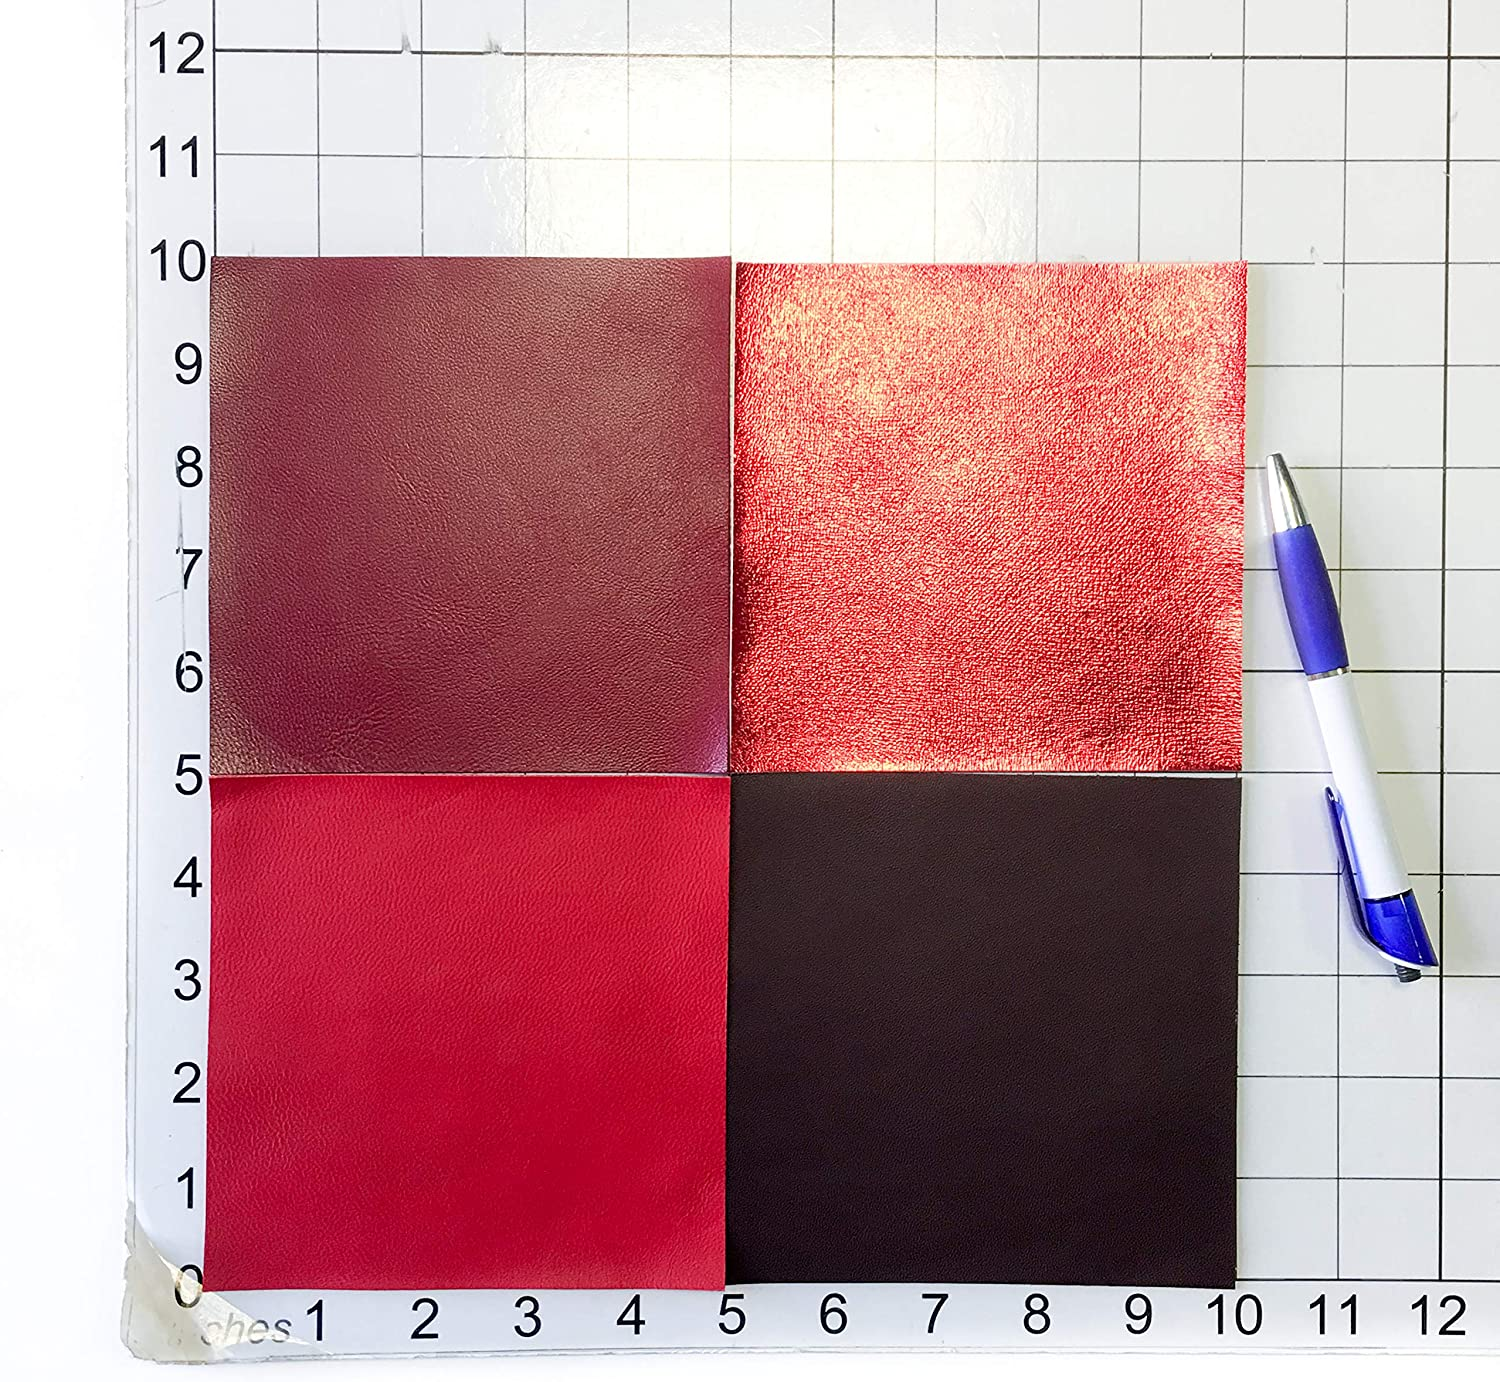 RED Italian FLEET Leather Calf Cow Hide Scraps Scrap Square Pieces Swatches Samples  5x5-20x20in.